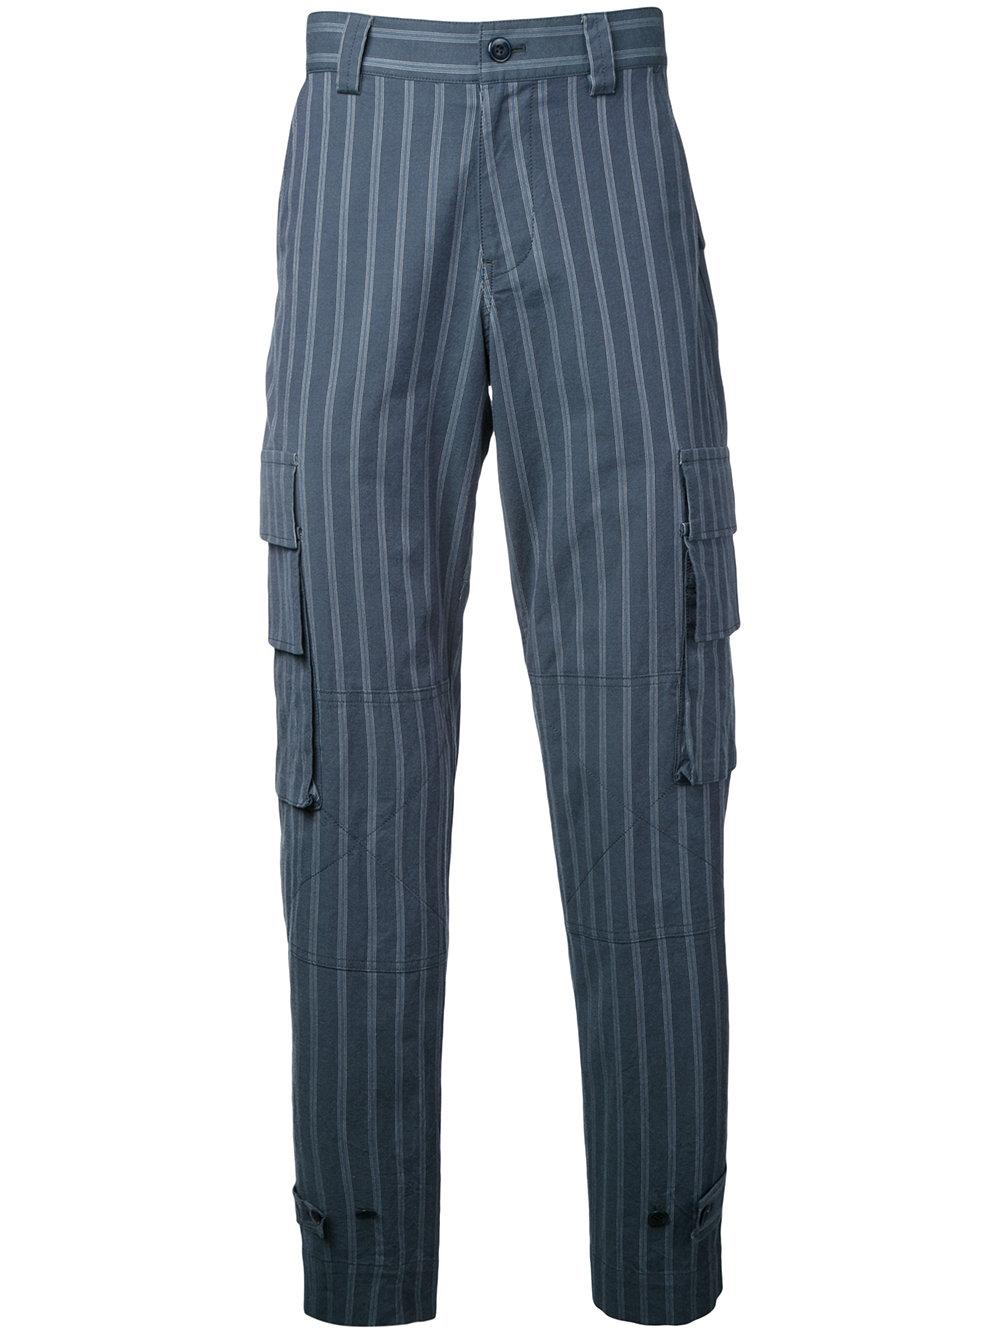 Find great deals on eBay for pants blue stripe. Shop with confidence.